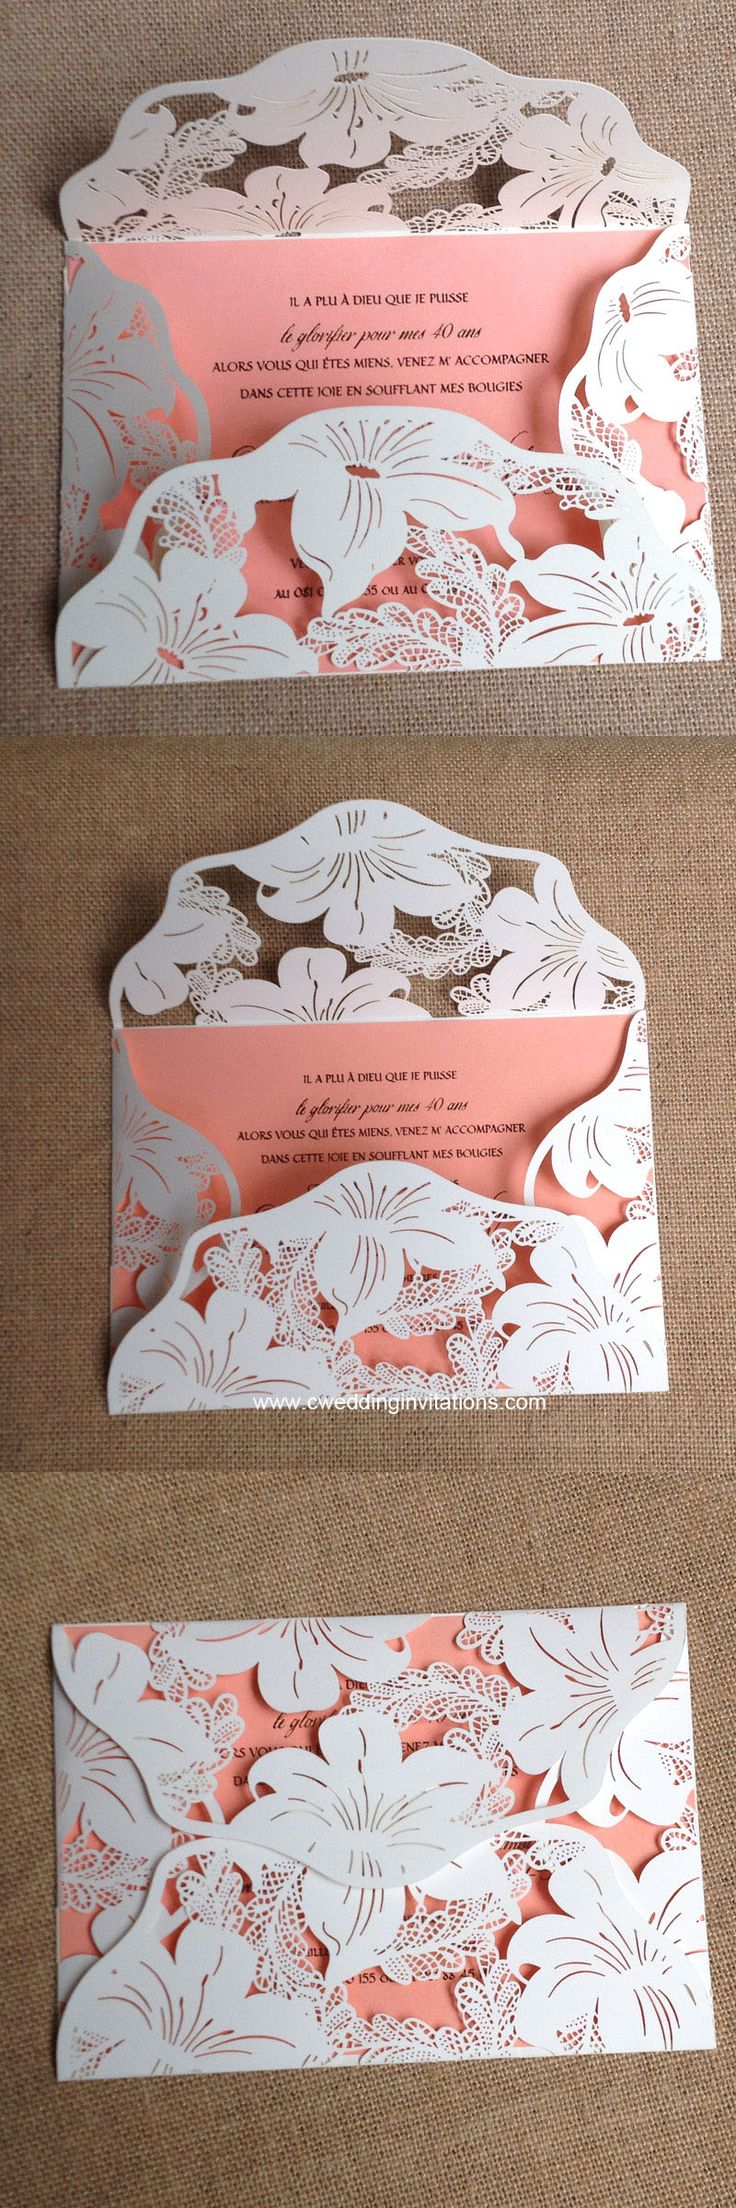 Lily blossom laser cut wedding invitations, 2016 New design laser cut wedding invitations, blush pink laser cut cards www.cweddinginvitations.com